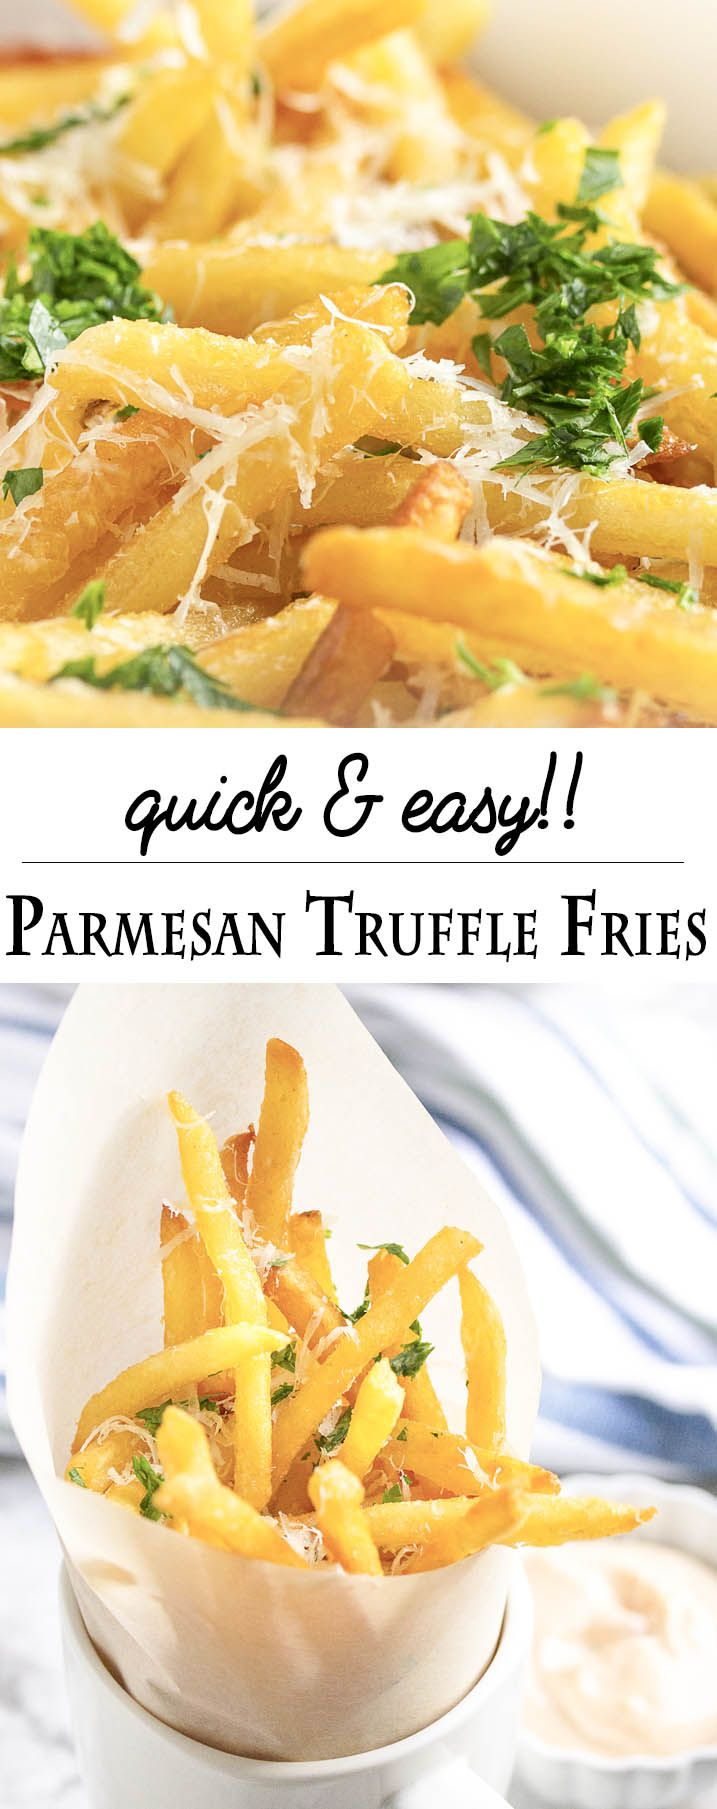 Quick And Easy Parmesan Truffle Fries Recipe Truffle Fries Parmesan Truffle Fries Truffle Oil Recipes